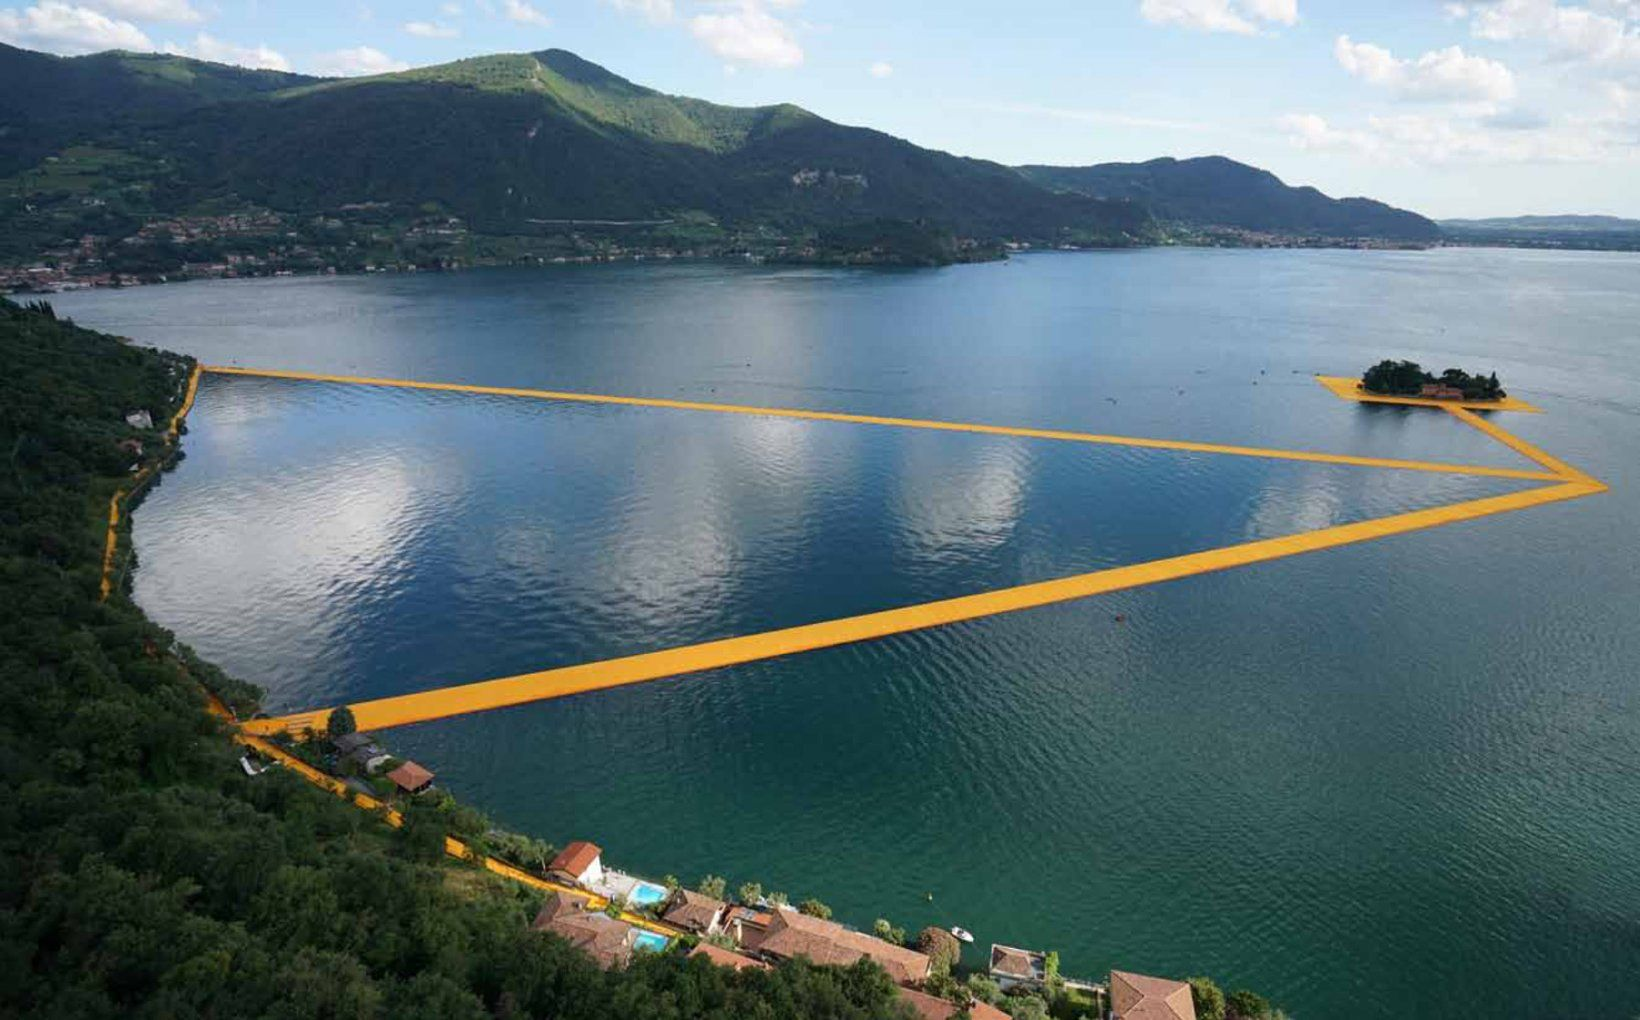 The Floating Piers in pictures. TASCHEN Books